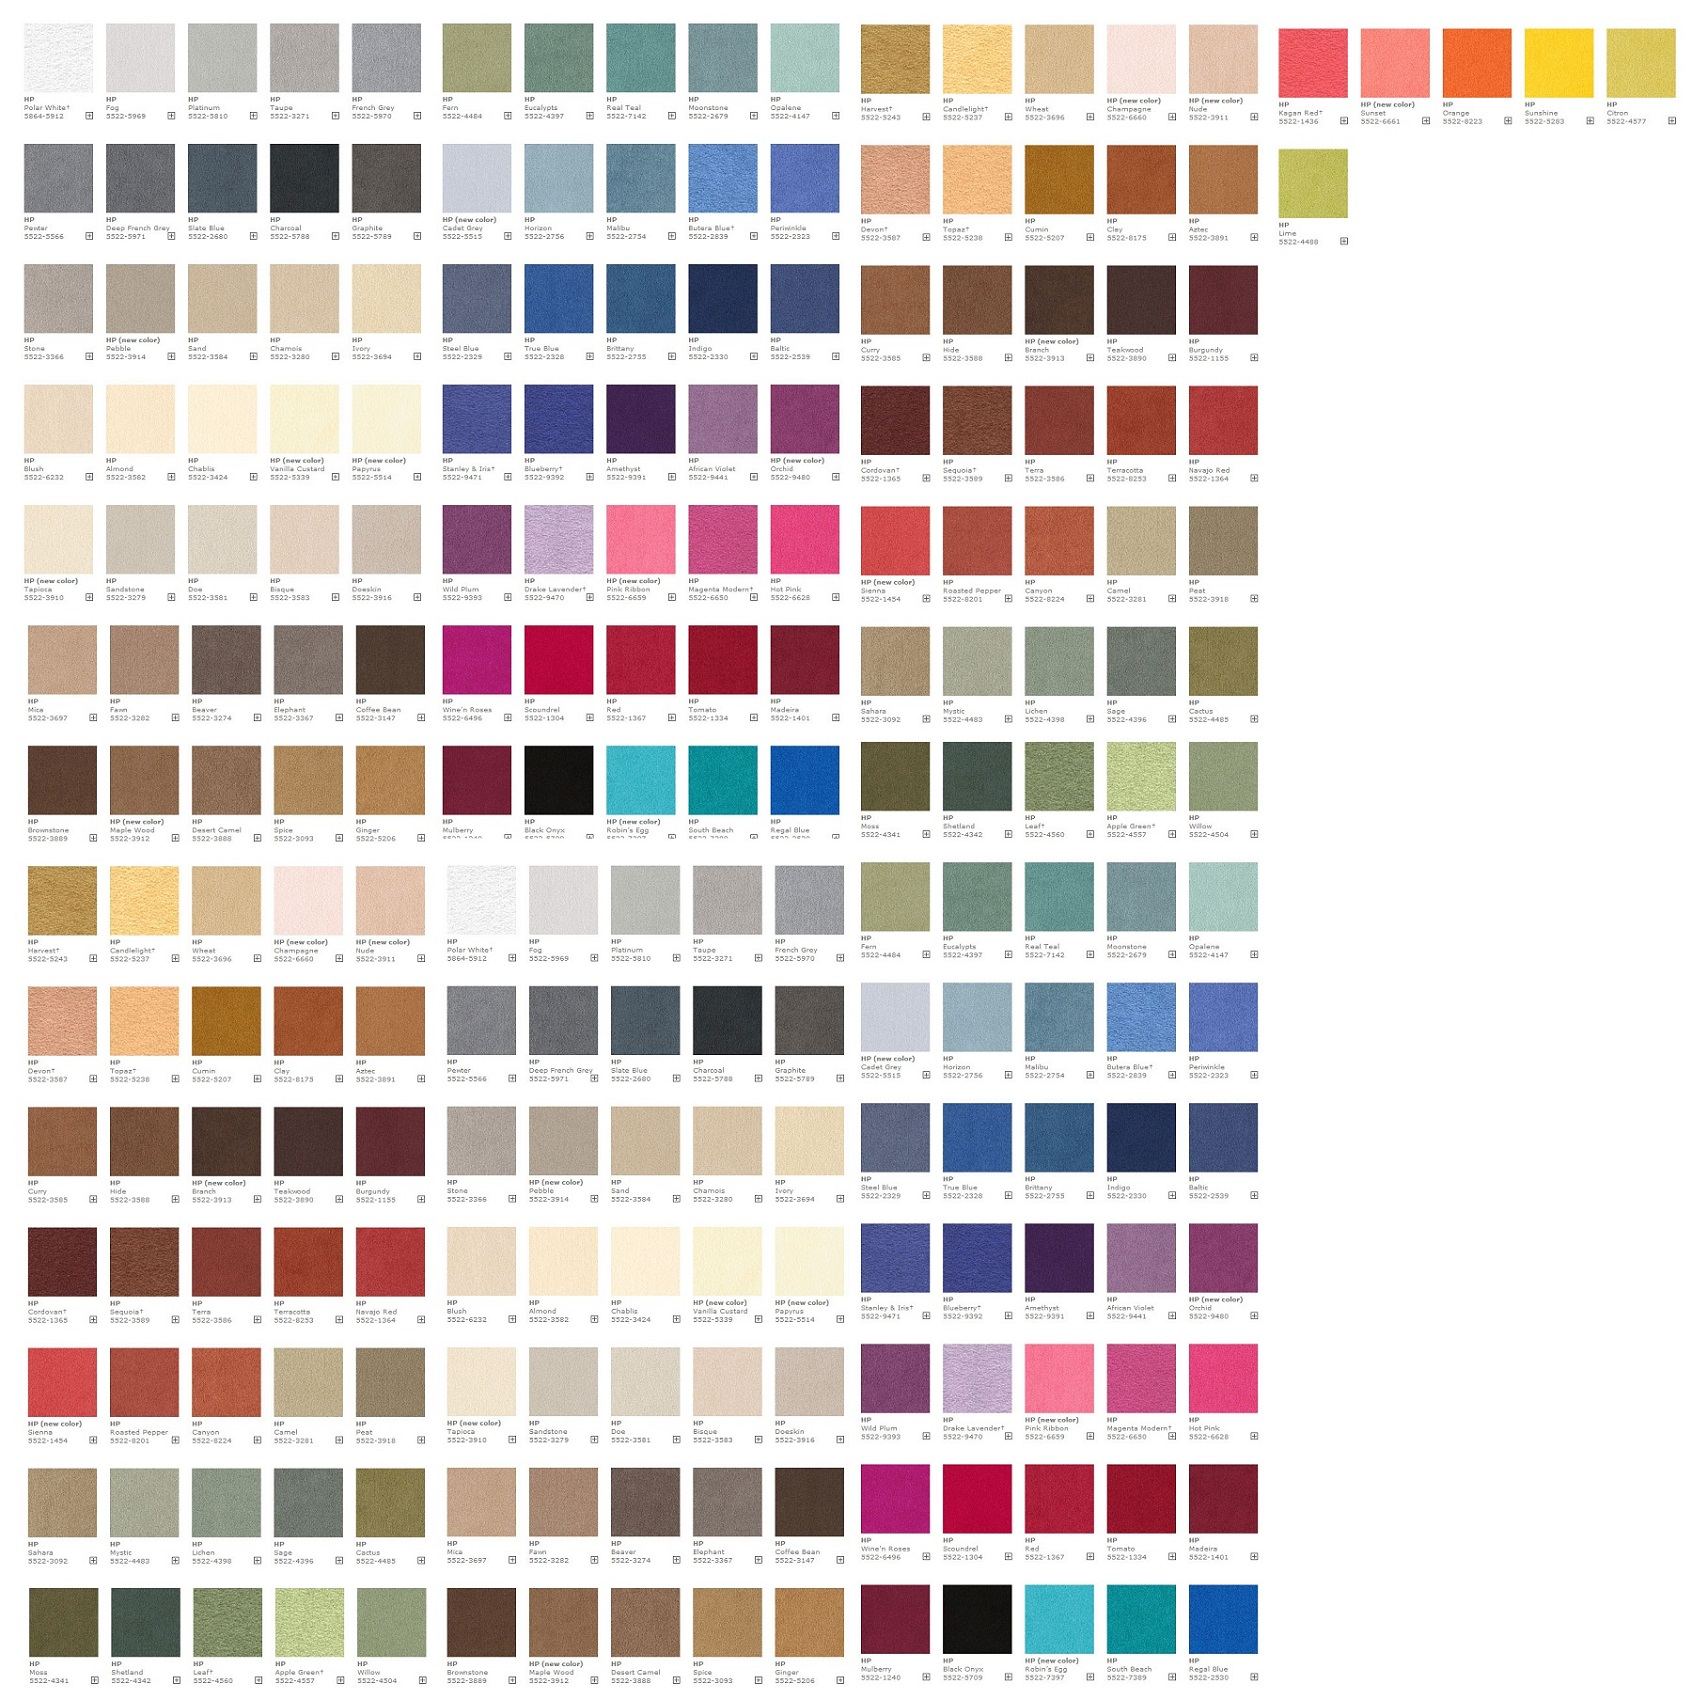 ultrasuede-swatches-resized.jpg